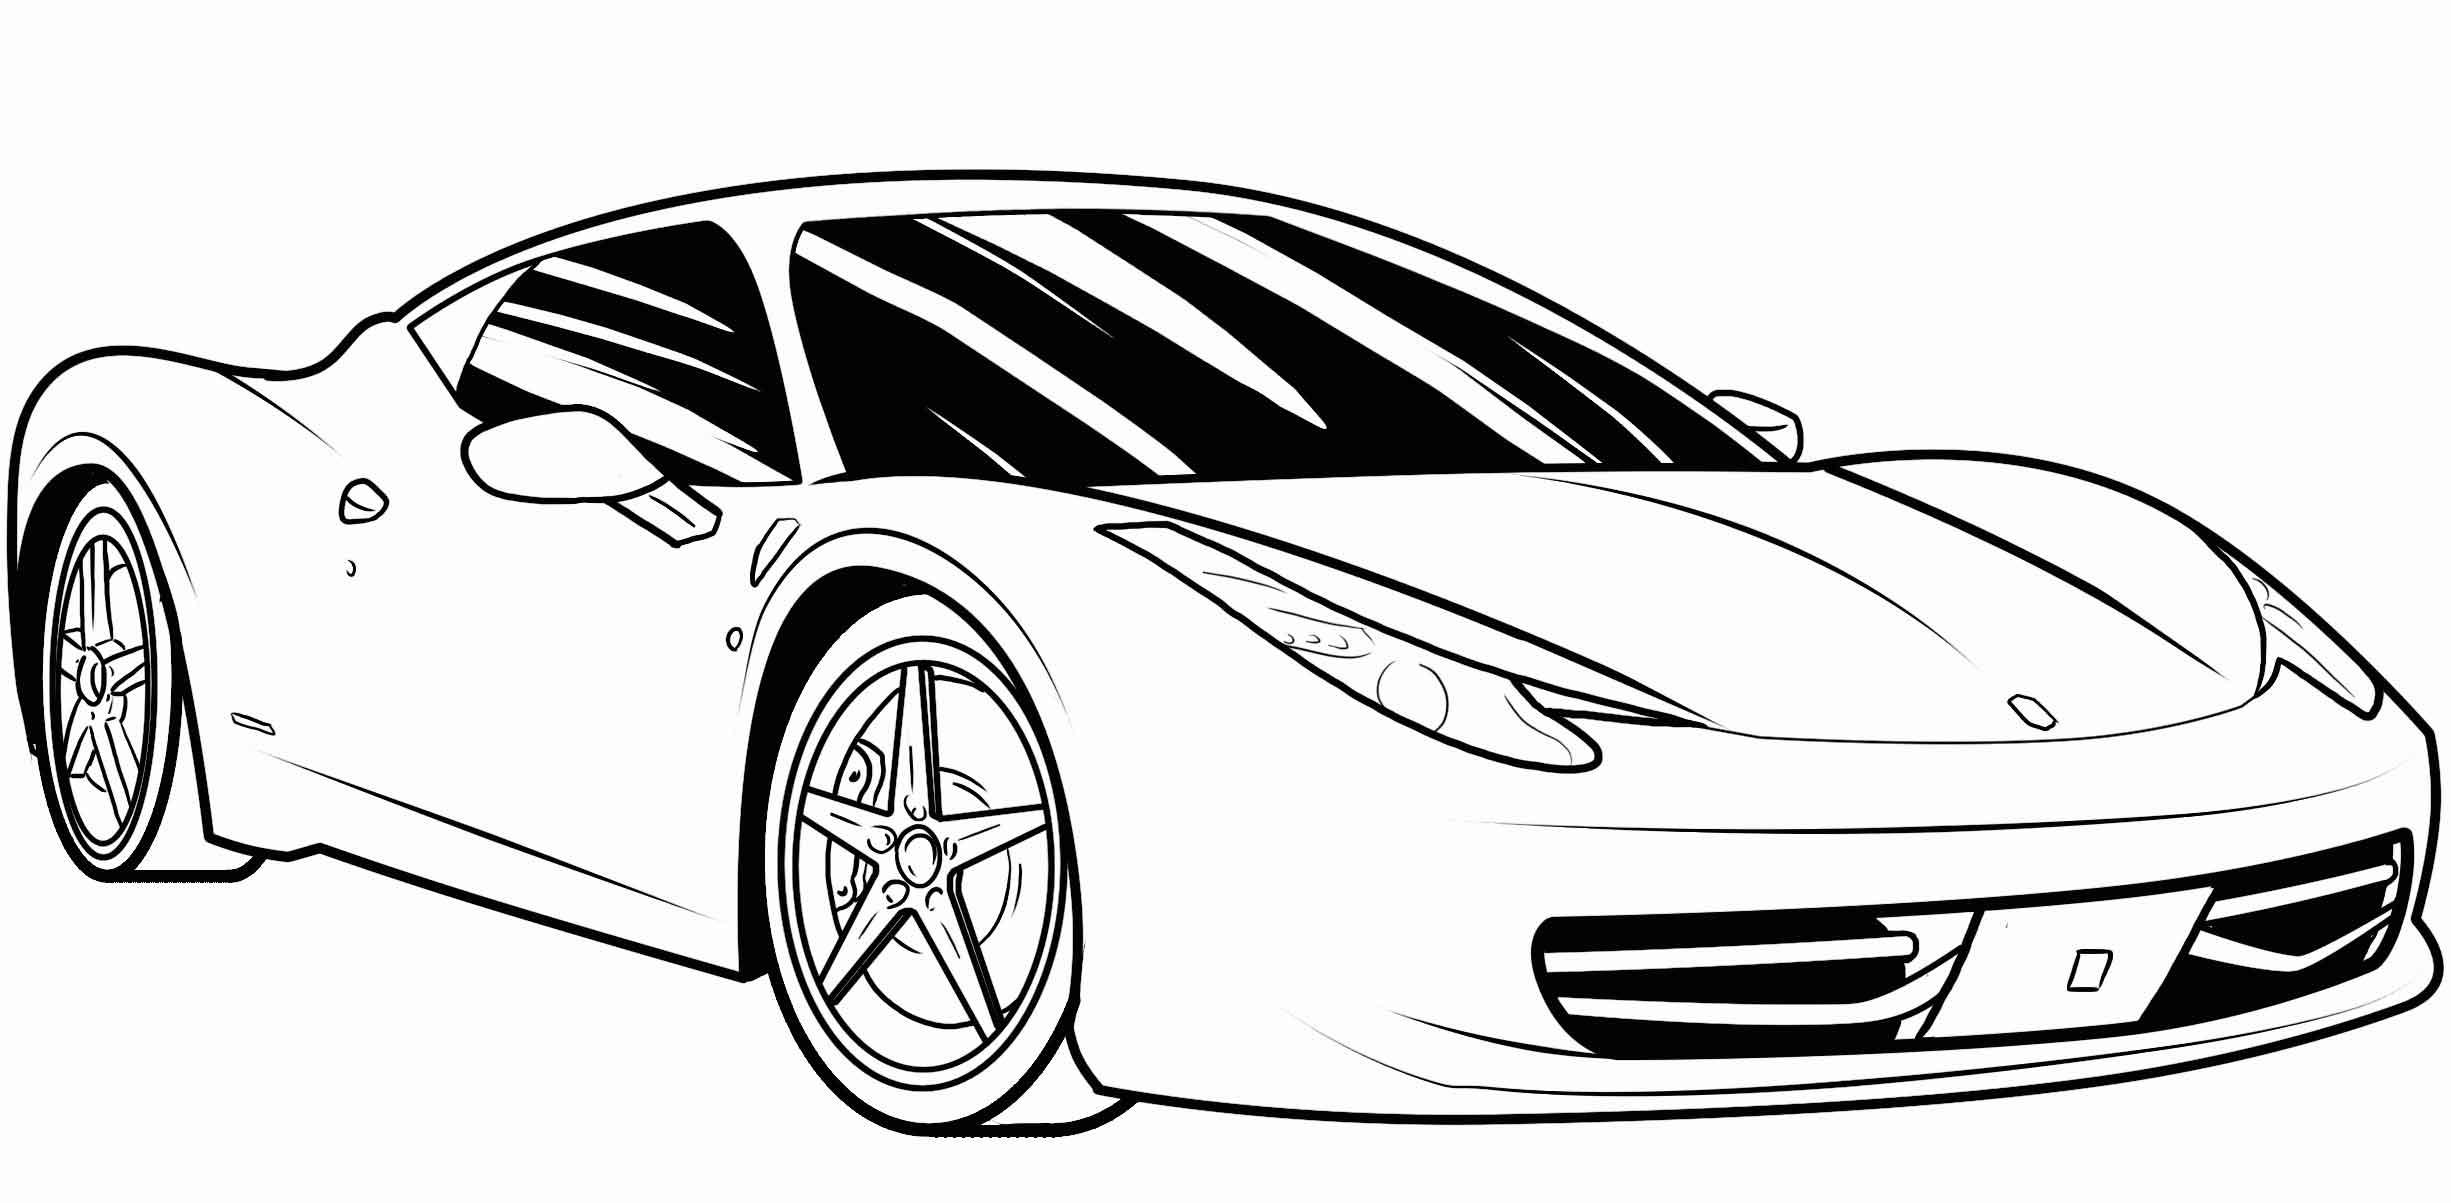 cars coloring pages free printable car coloring pages for all ages free printable fast pages cars printable free coloring